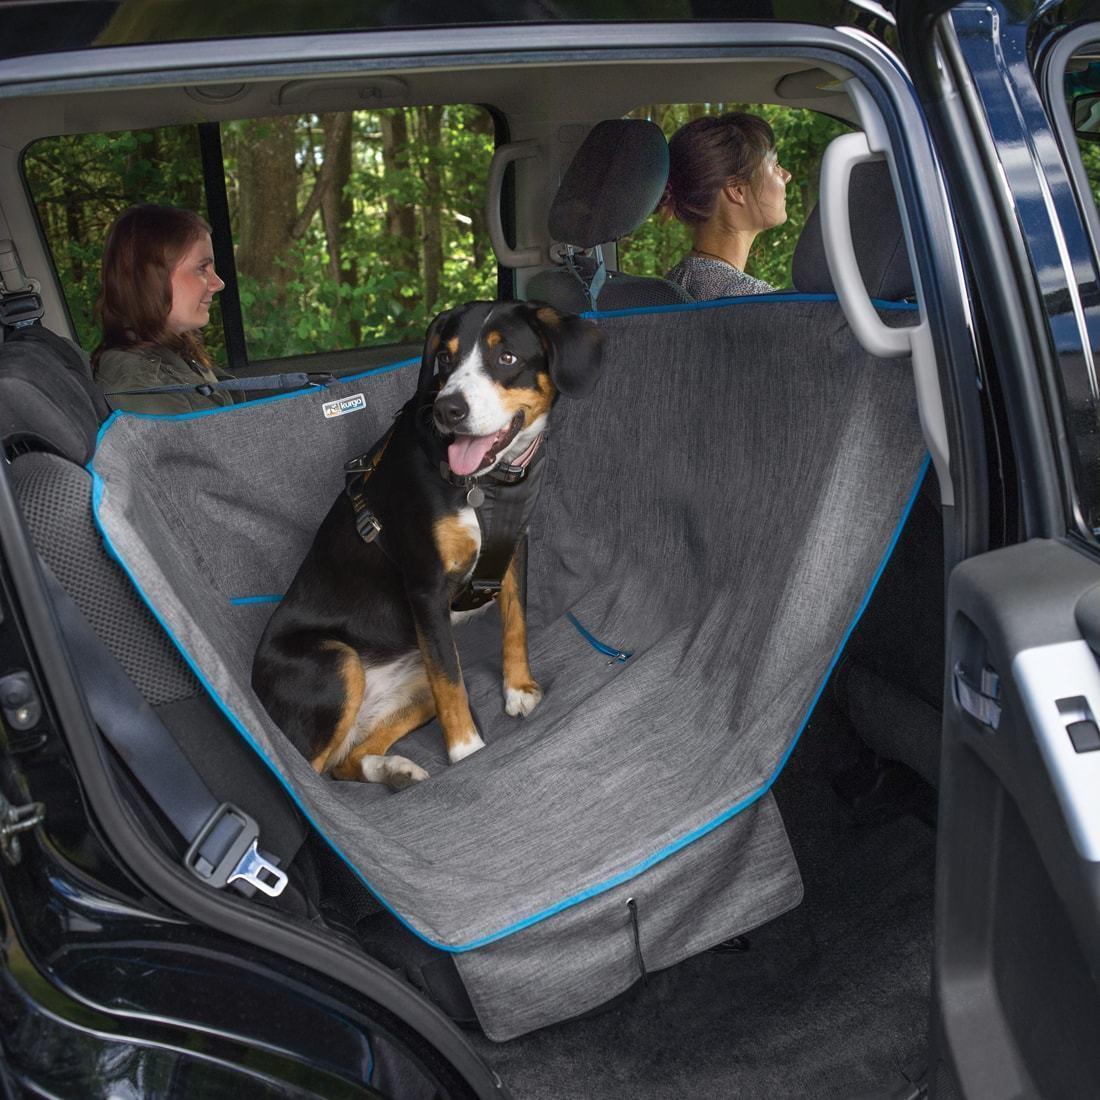 big bed hammock shop seat bag carrier pet zipper car stroller dog size